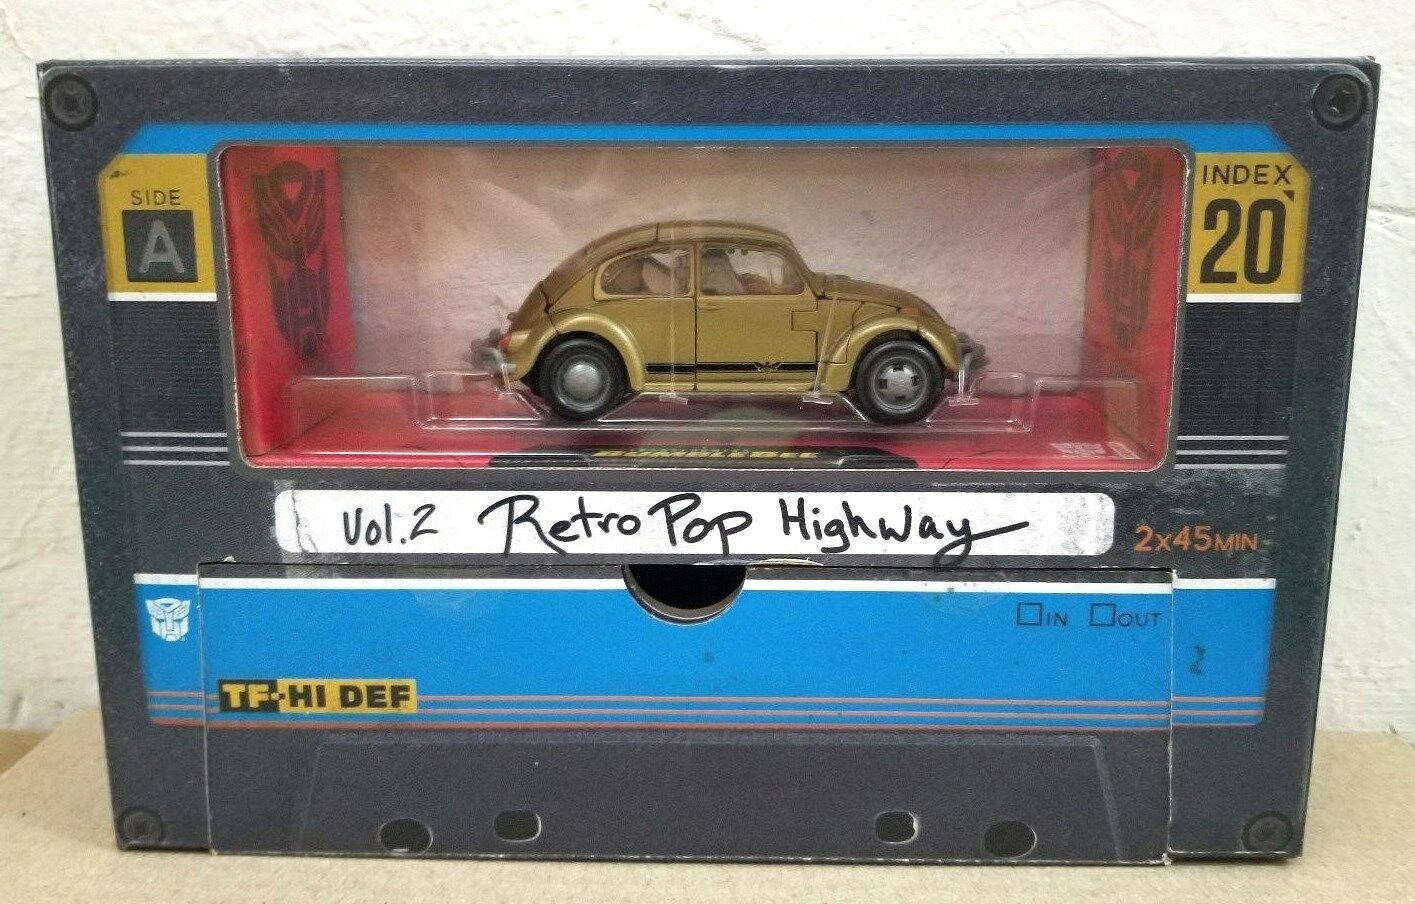 HASBRO TRANSFORMERS STUDIO SERIES  20 BUMBLEBEE VOL.2 RETRO POP HIGHWAY & G1 TAP